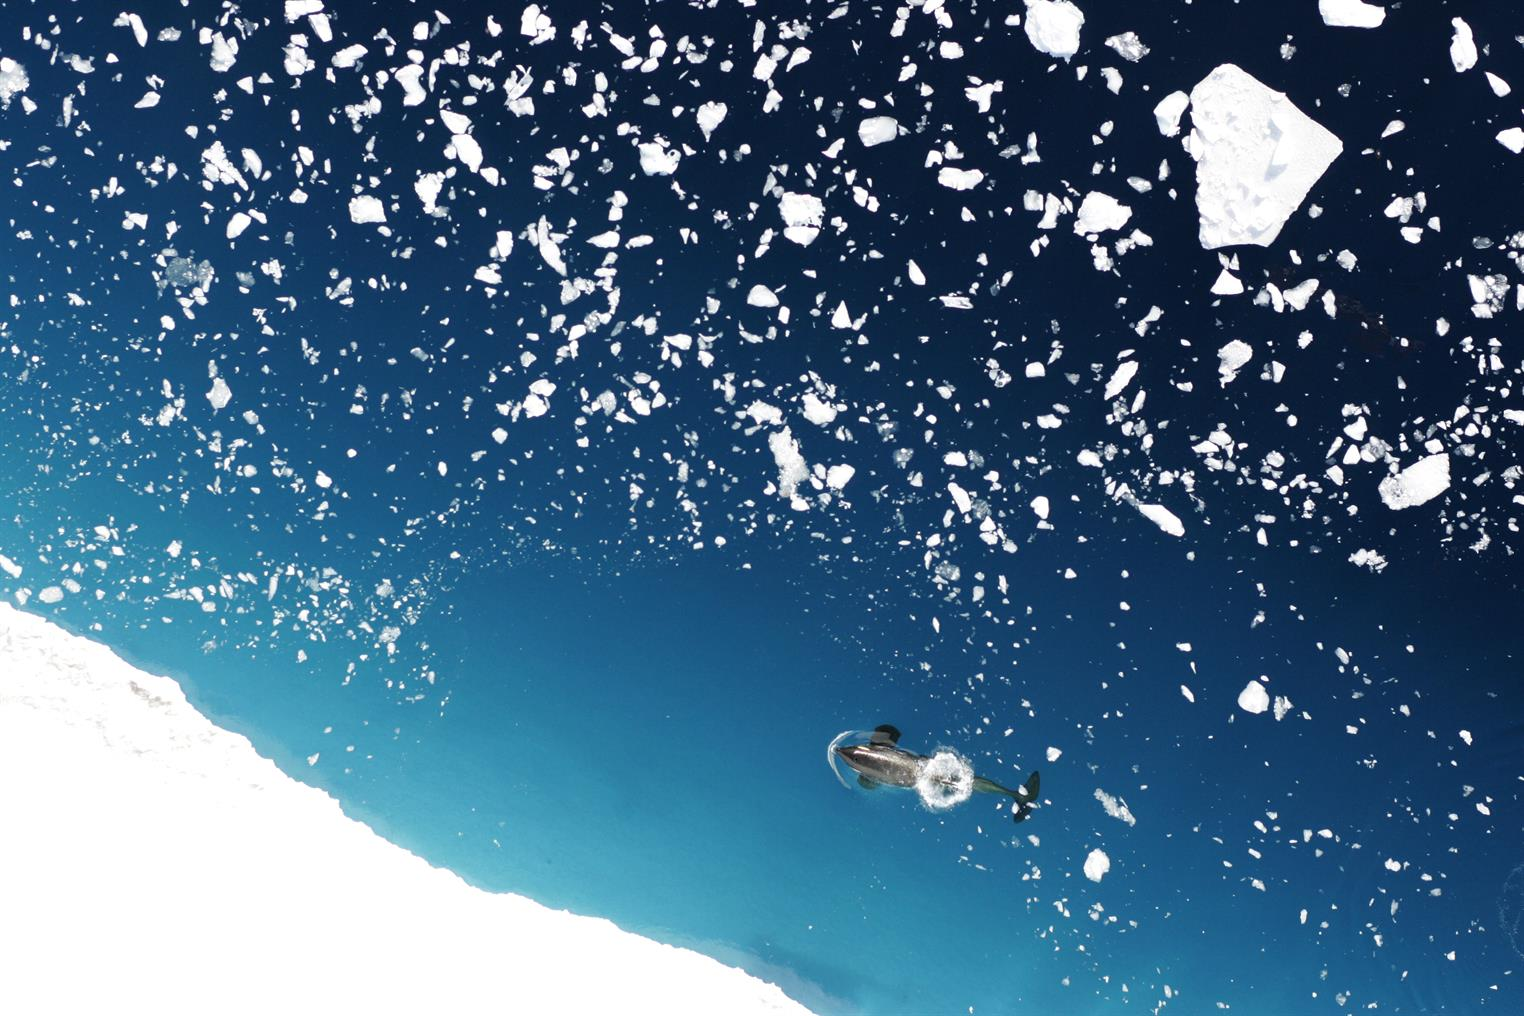 A killer whale swims amid floating ice in the Ross Sea.